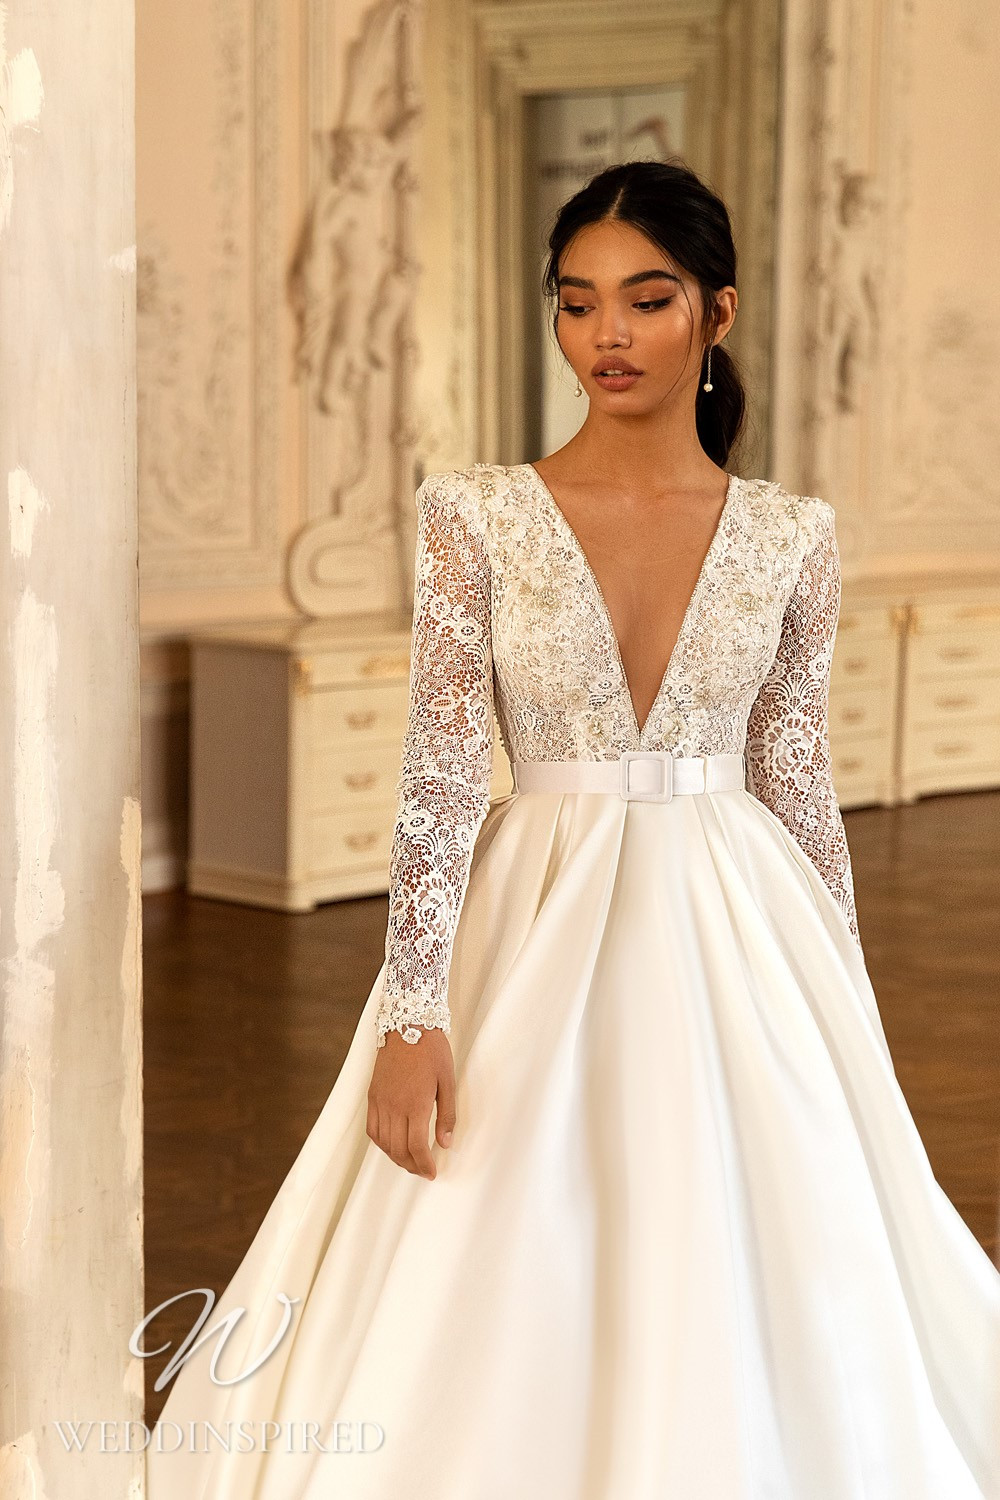 A WONÁ Concept 2021 lace and satin princess wedding dress with long sleeves